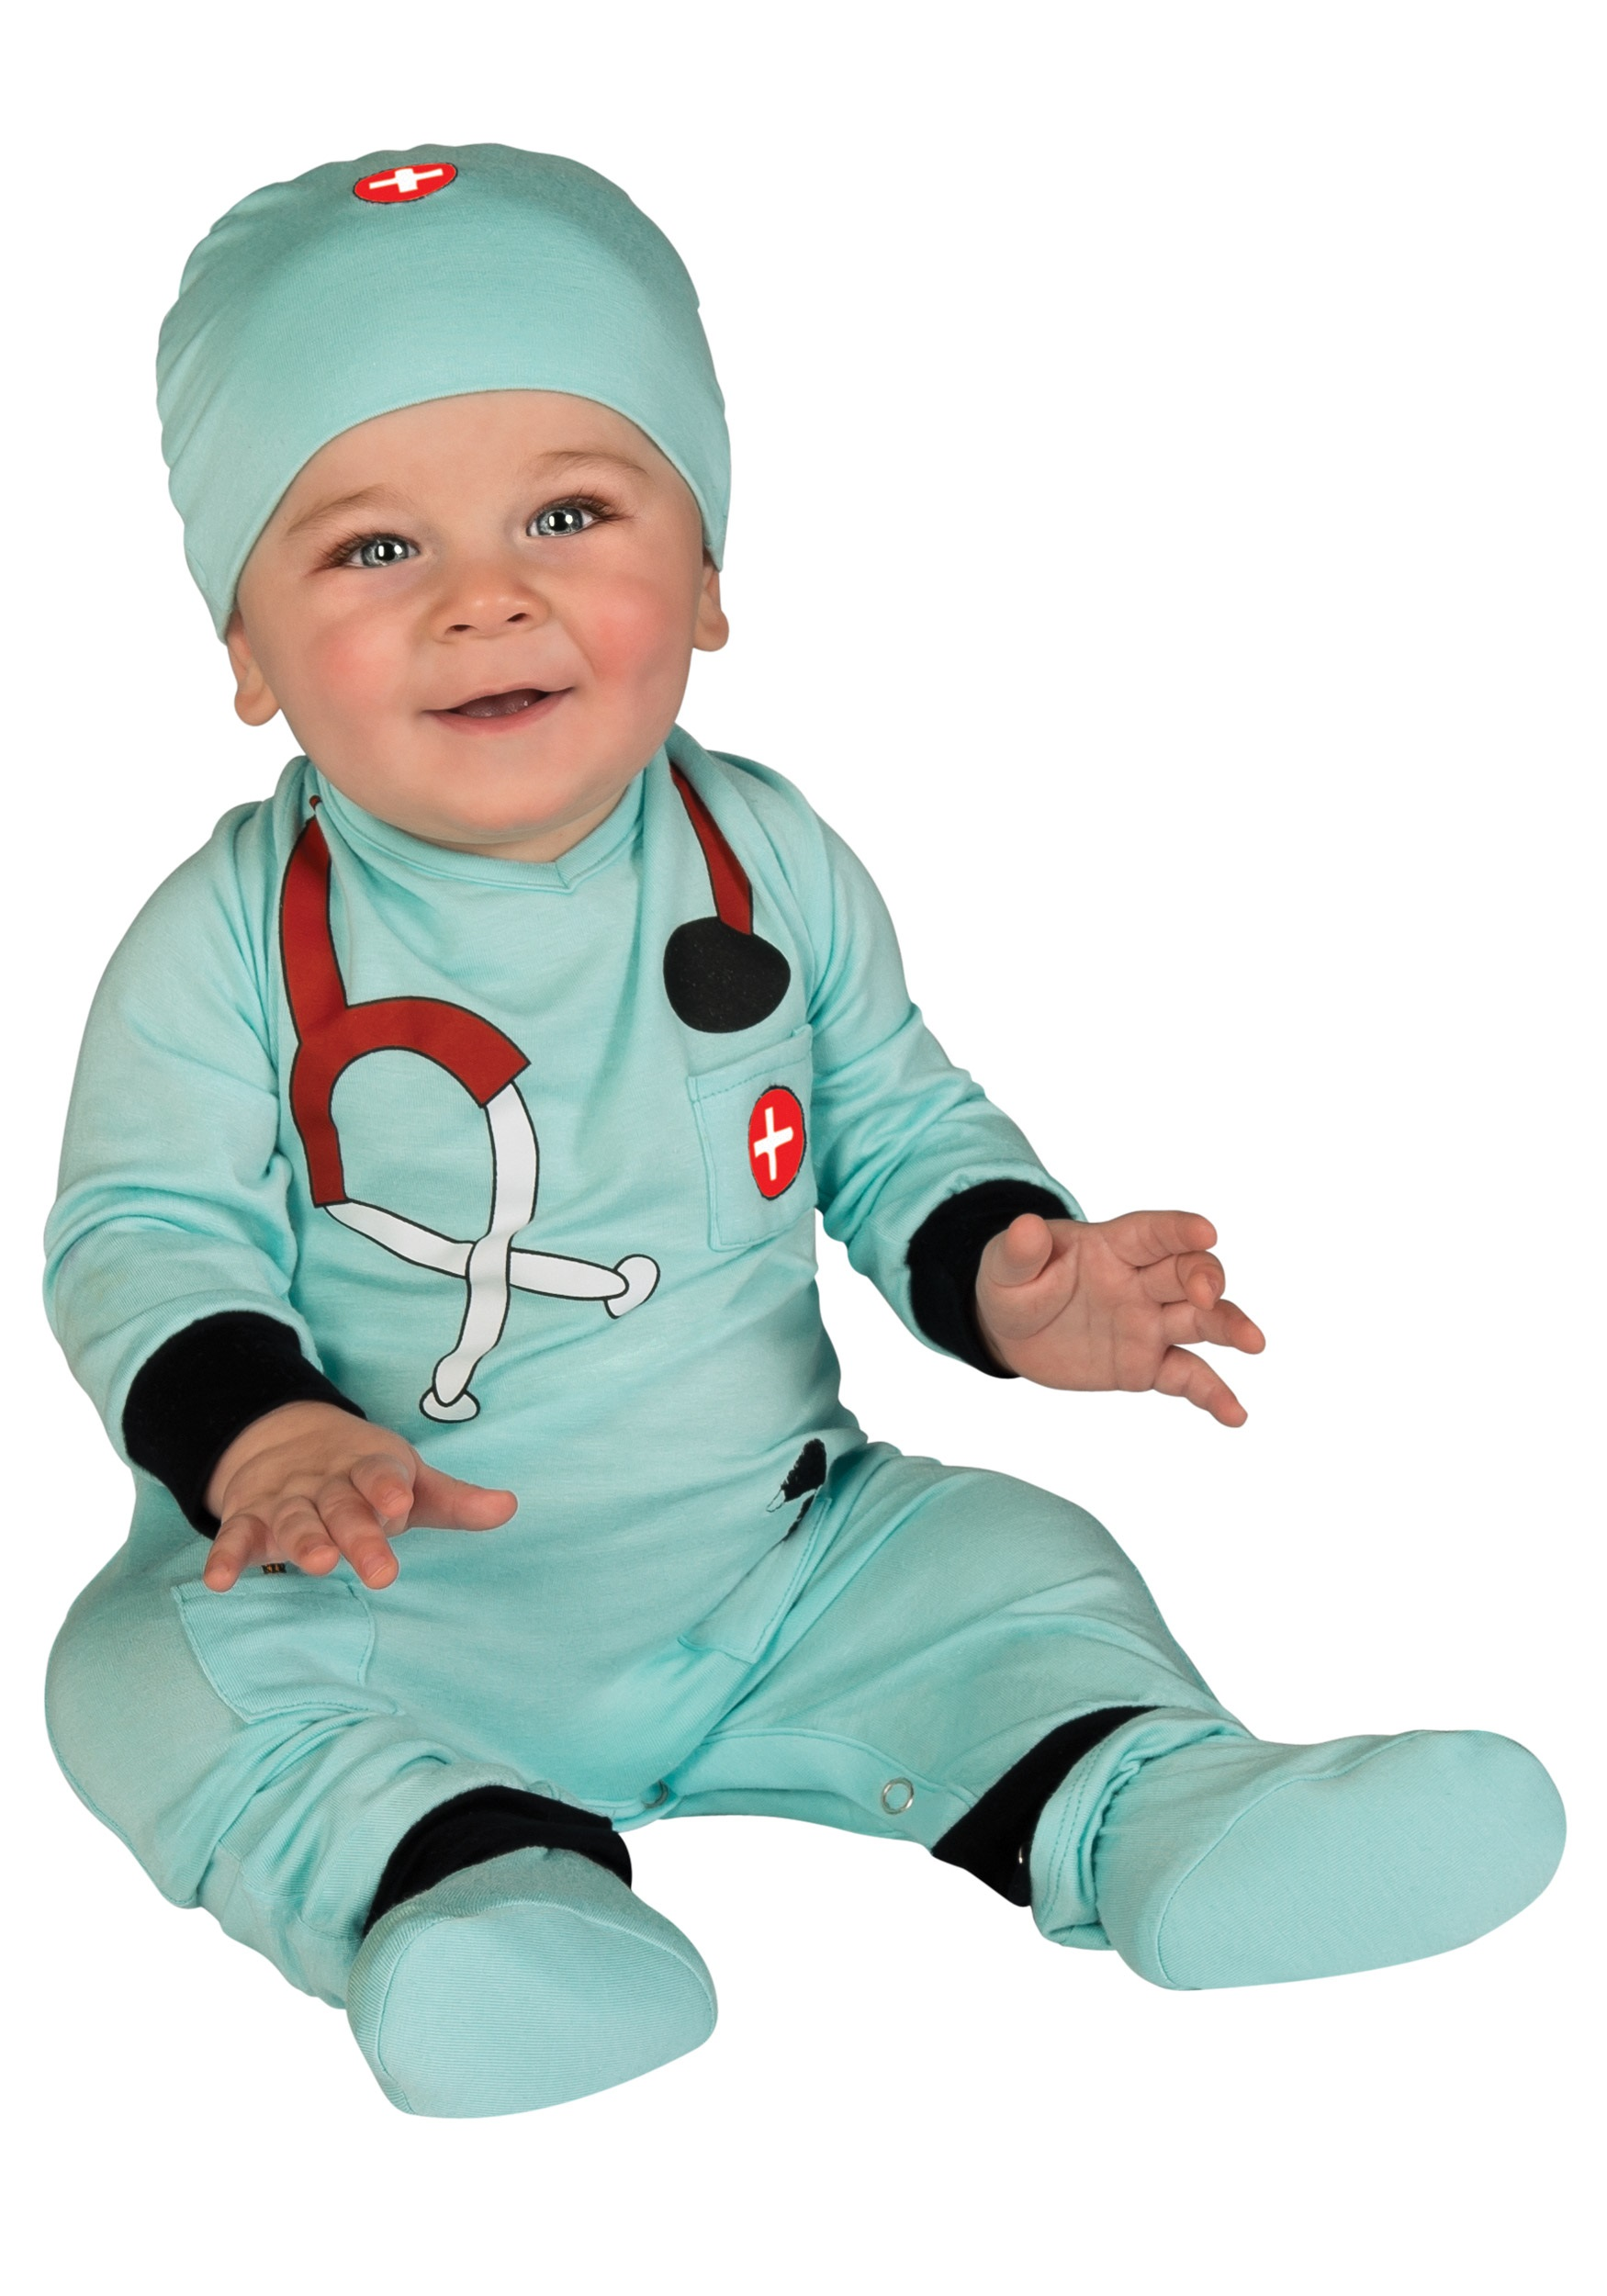 Infant Doctor Sleeper  sc 1 st  Halloween Costumes & Infant Doctor Sleeper - Halloween Costumes